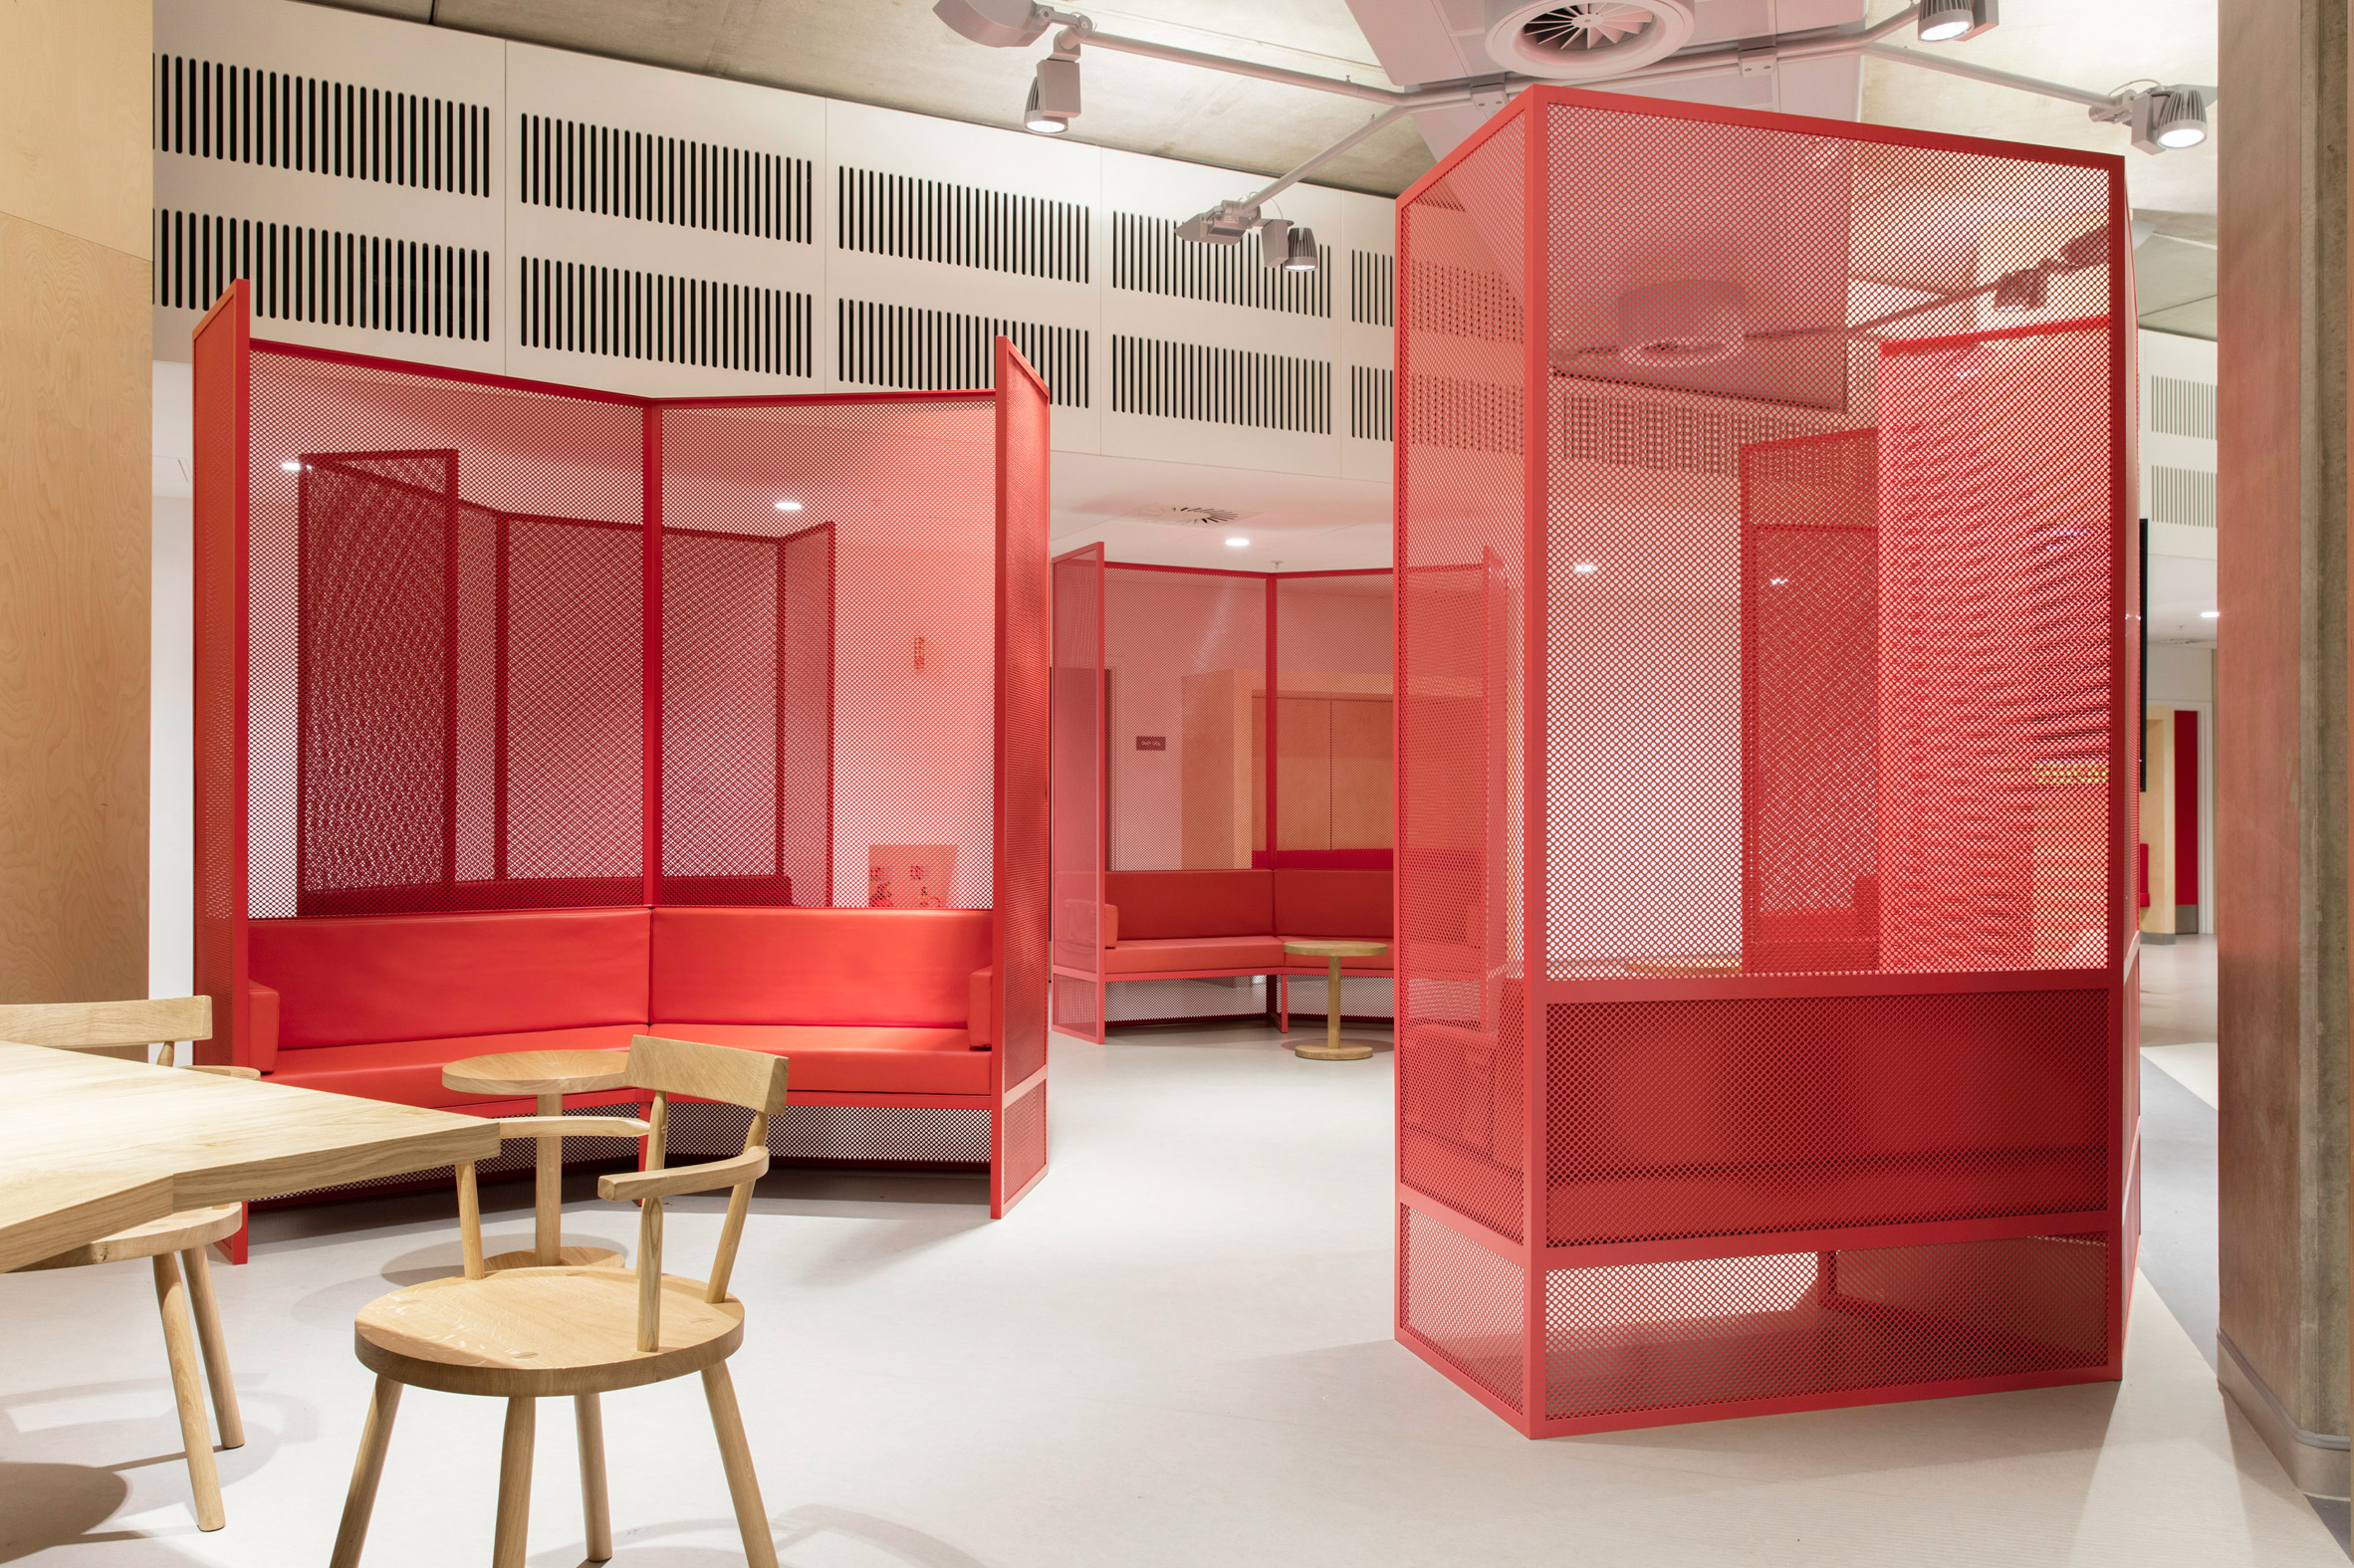 guys-cancer-centre-interiors-london-bridge-uk-gitta-gschwendtner_dezeen_2364_col_14